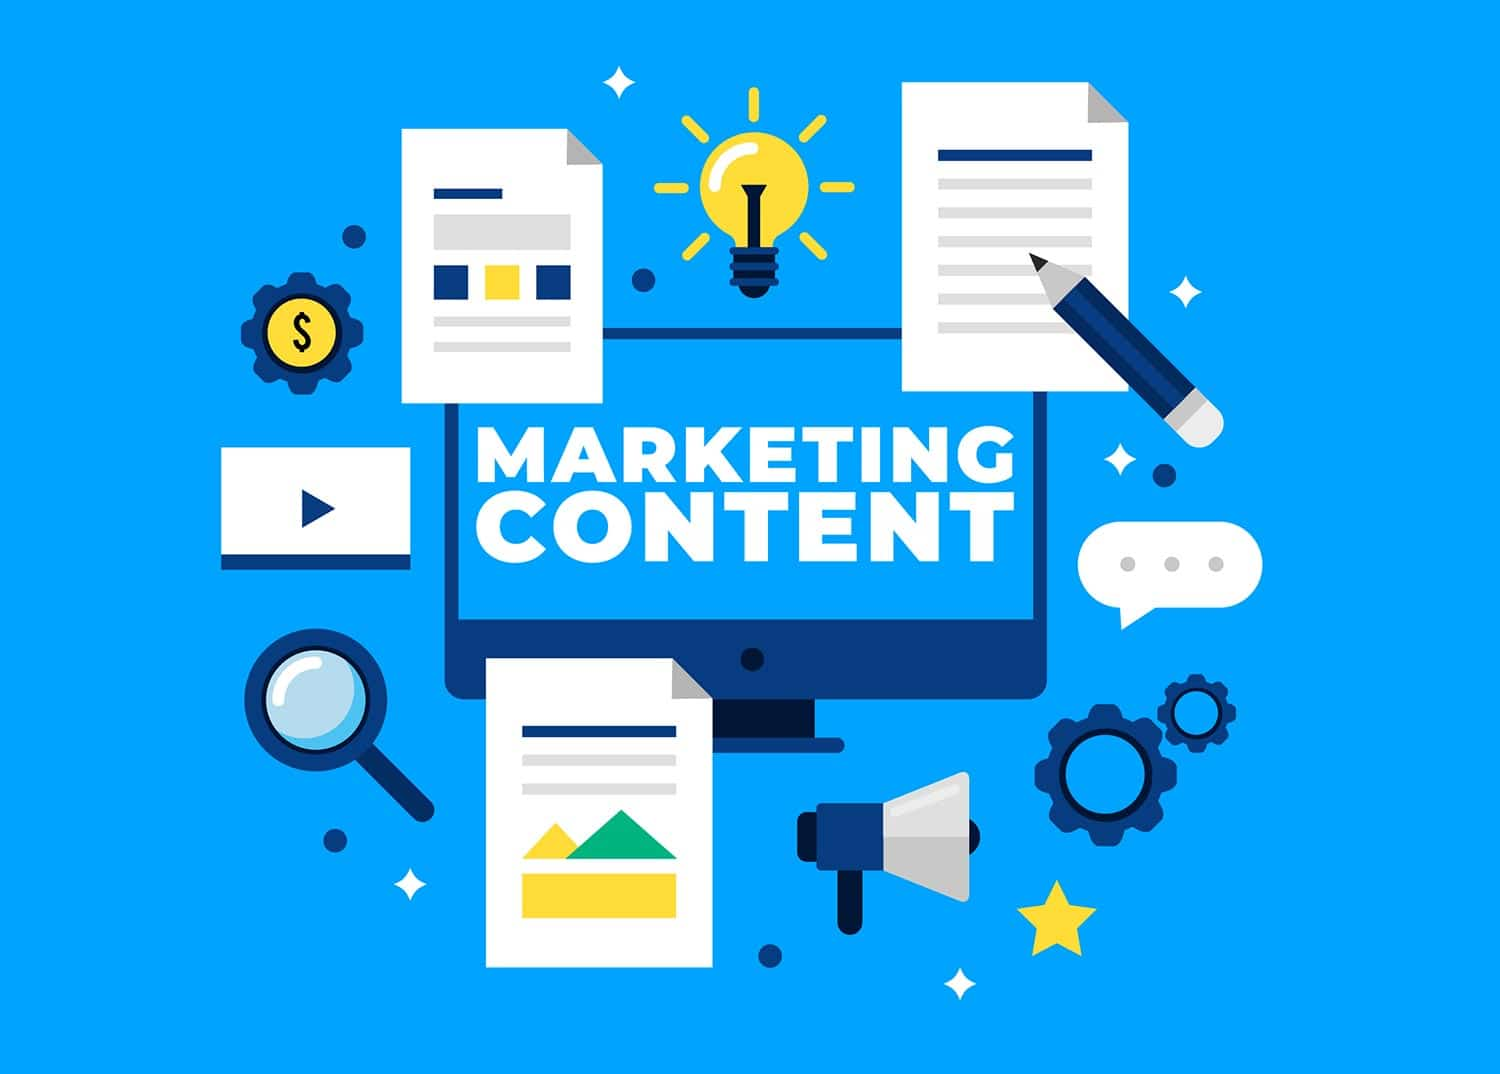 Content marketing tools and strategy for your business